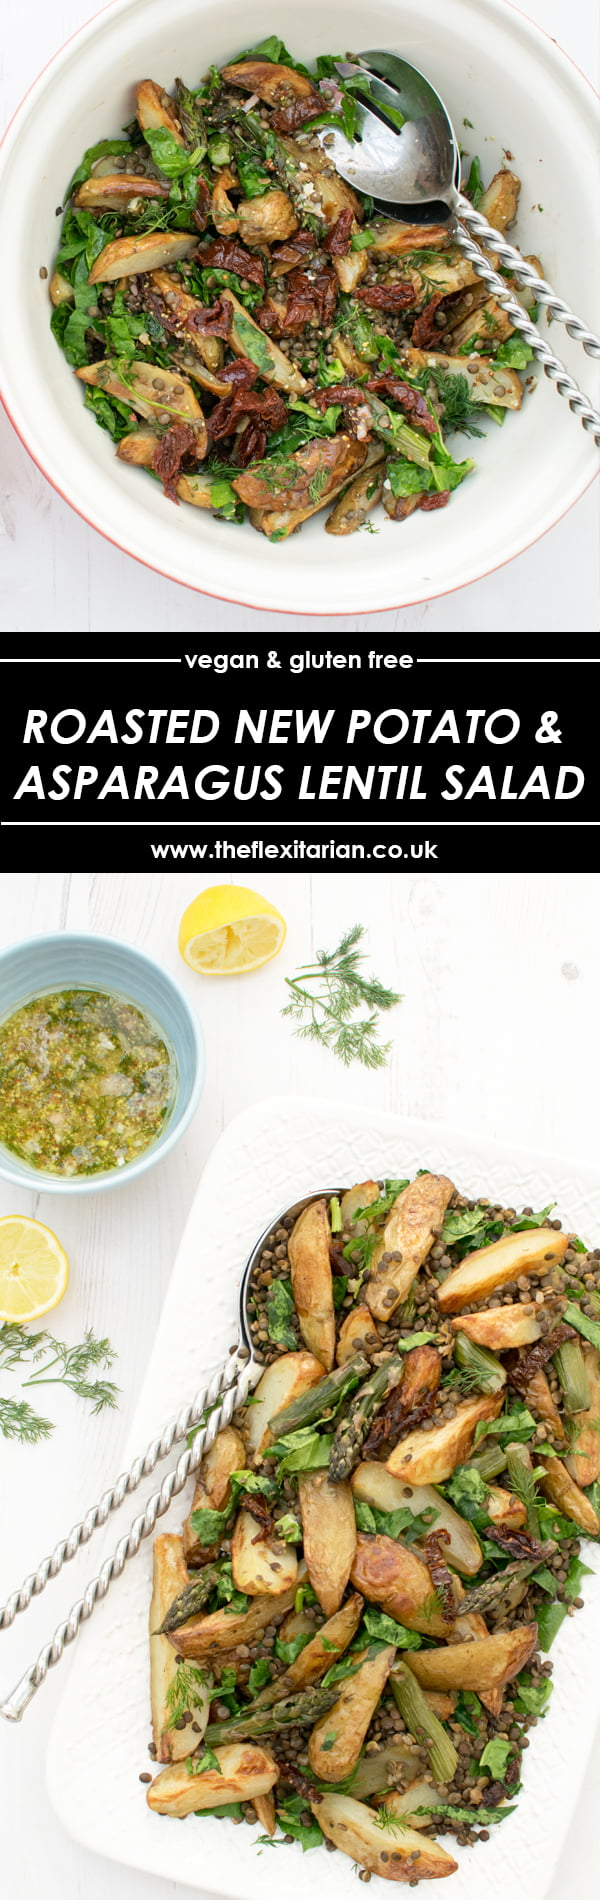 Roasted New Potato and Asparagus Lentil Salad [vegan] [gluten free] by The Flexitarian